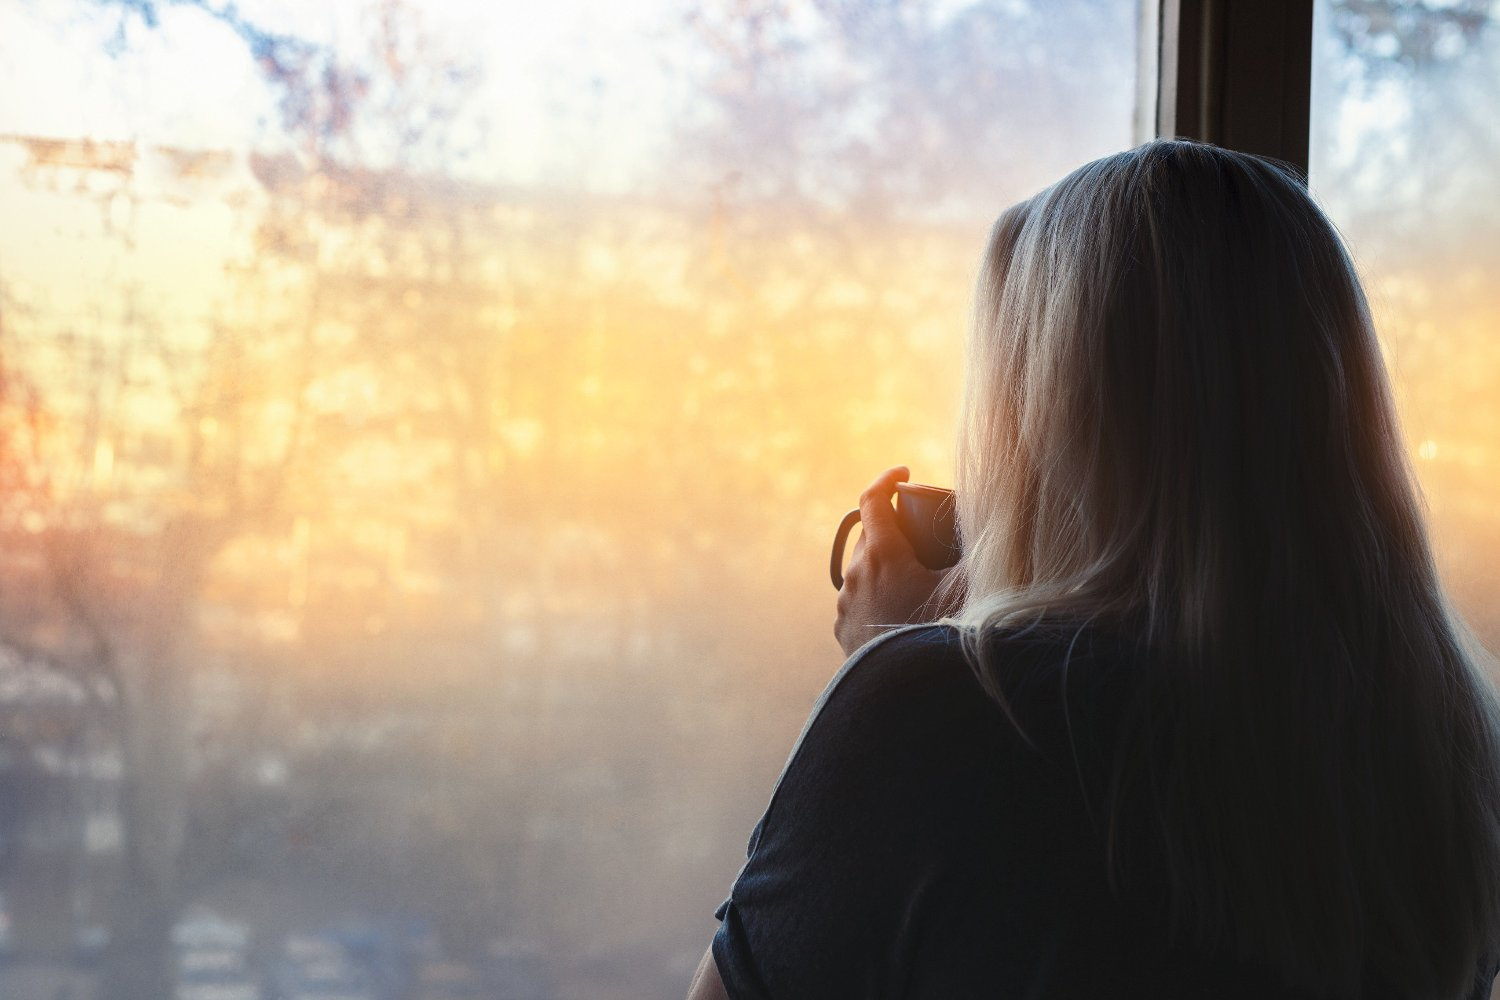 Blonde woman standing by the window, with coffee cup in hands, looking out into the morning light Blonde woman standing by the window, with coffee cup in hands, looking out into the morning light